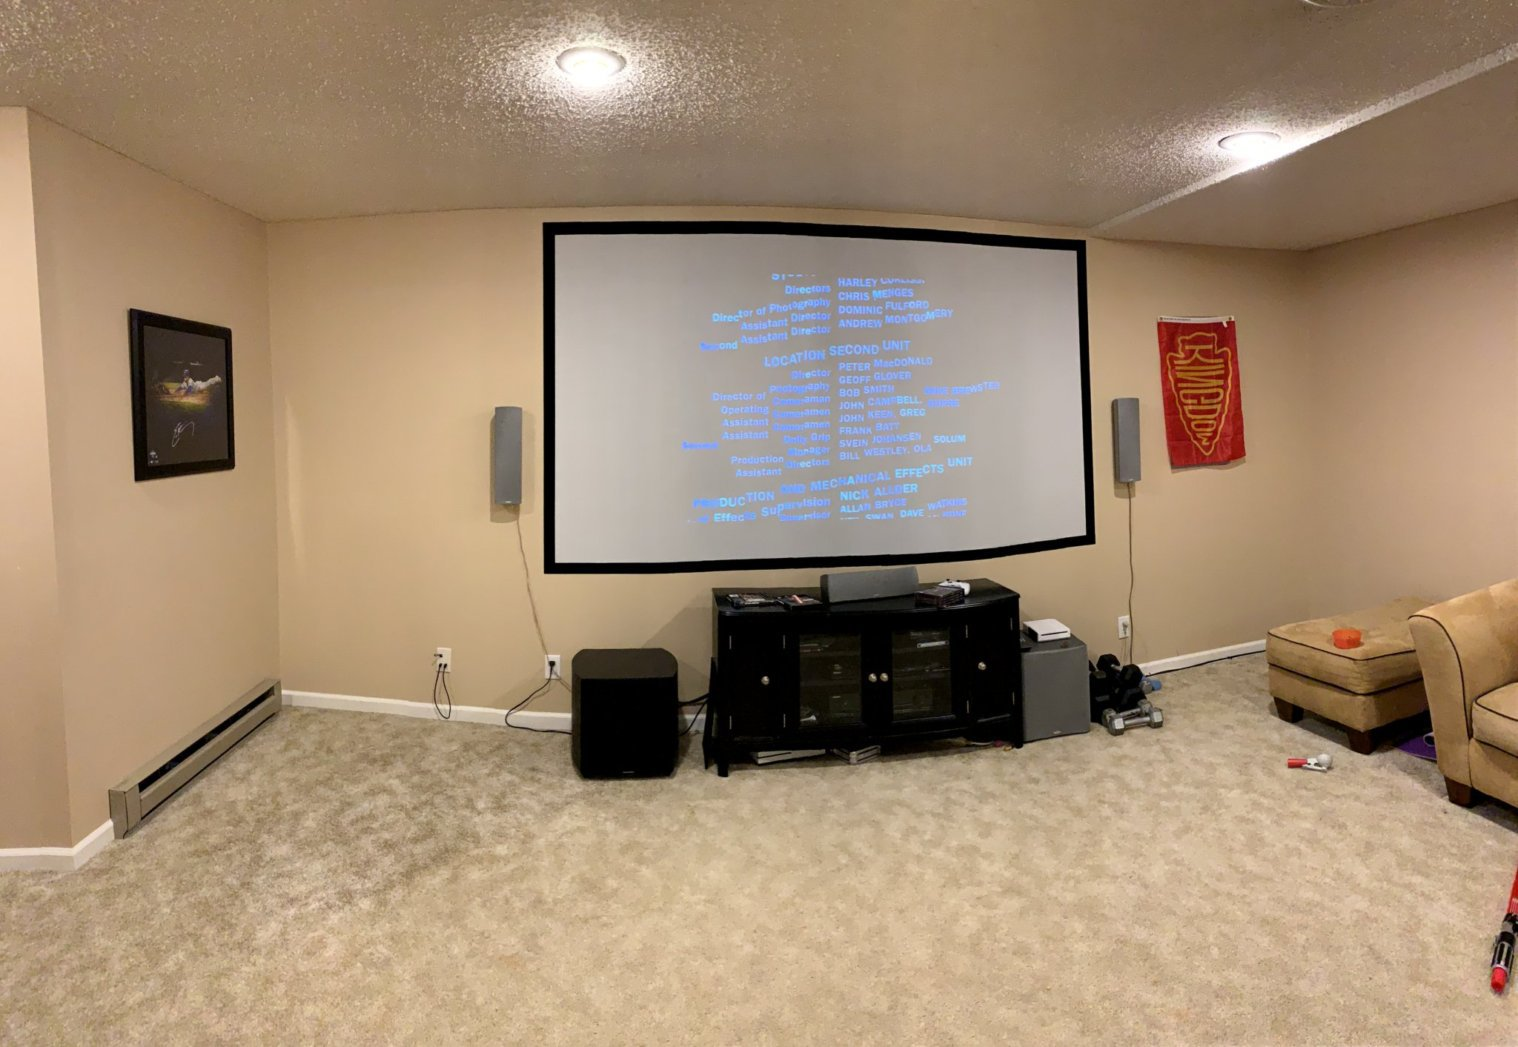 New Klipsch 5 1 Setup  Need Help With Surround Placement - Home Theater